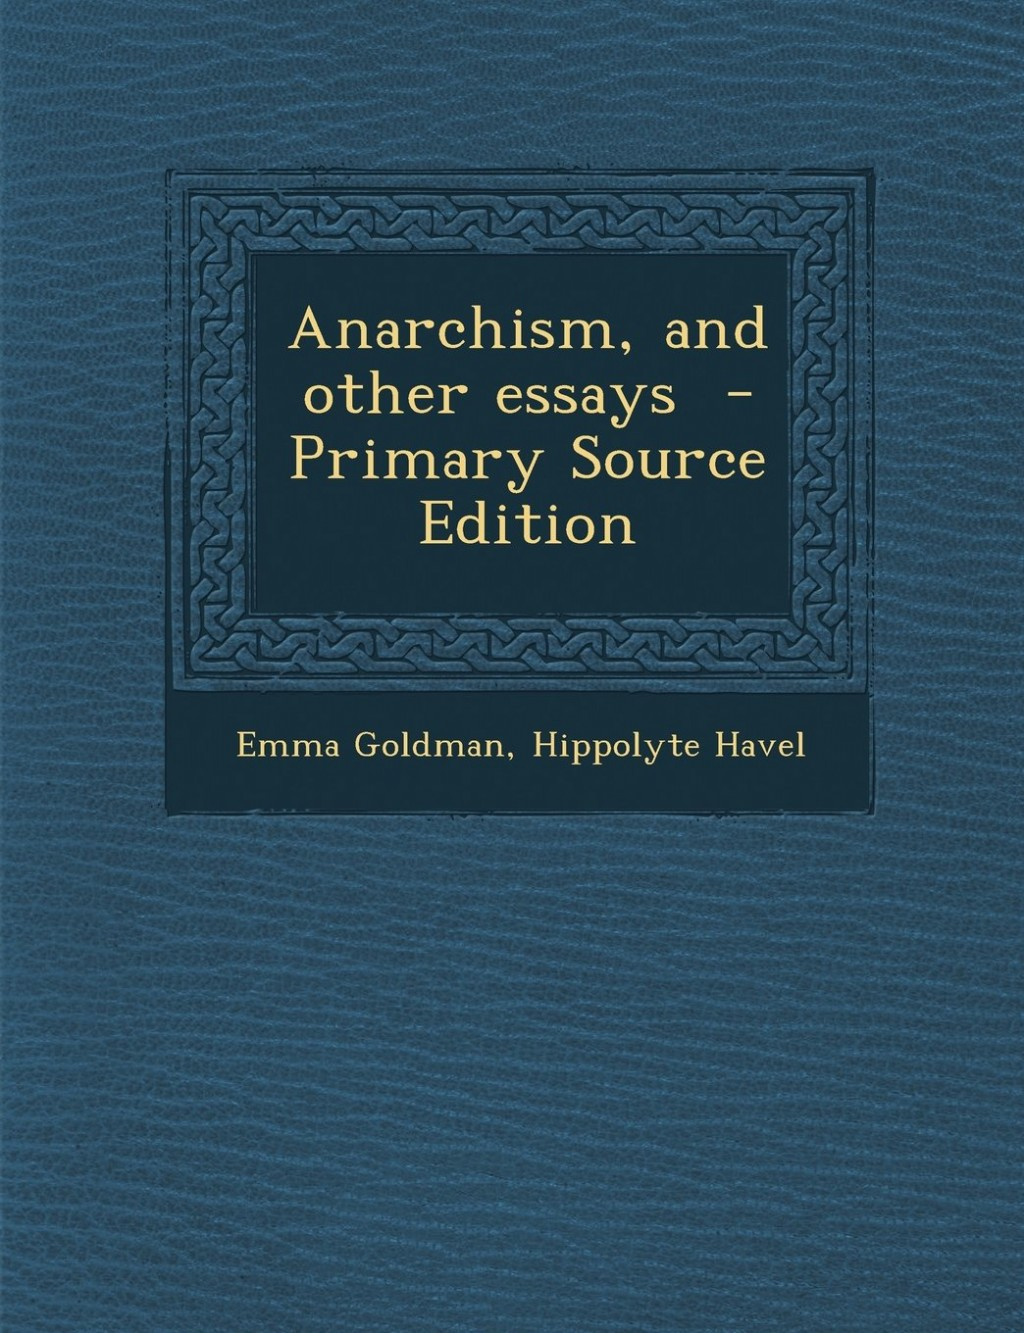 011 Essay Example 81cxvi Vkbl Anarchism And Other Incredible Essays Emma Goldman Summary Pdf Large